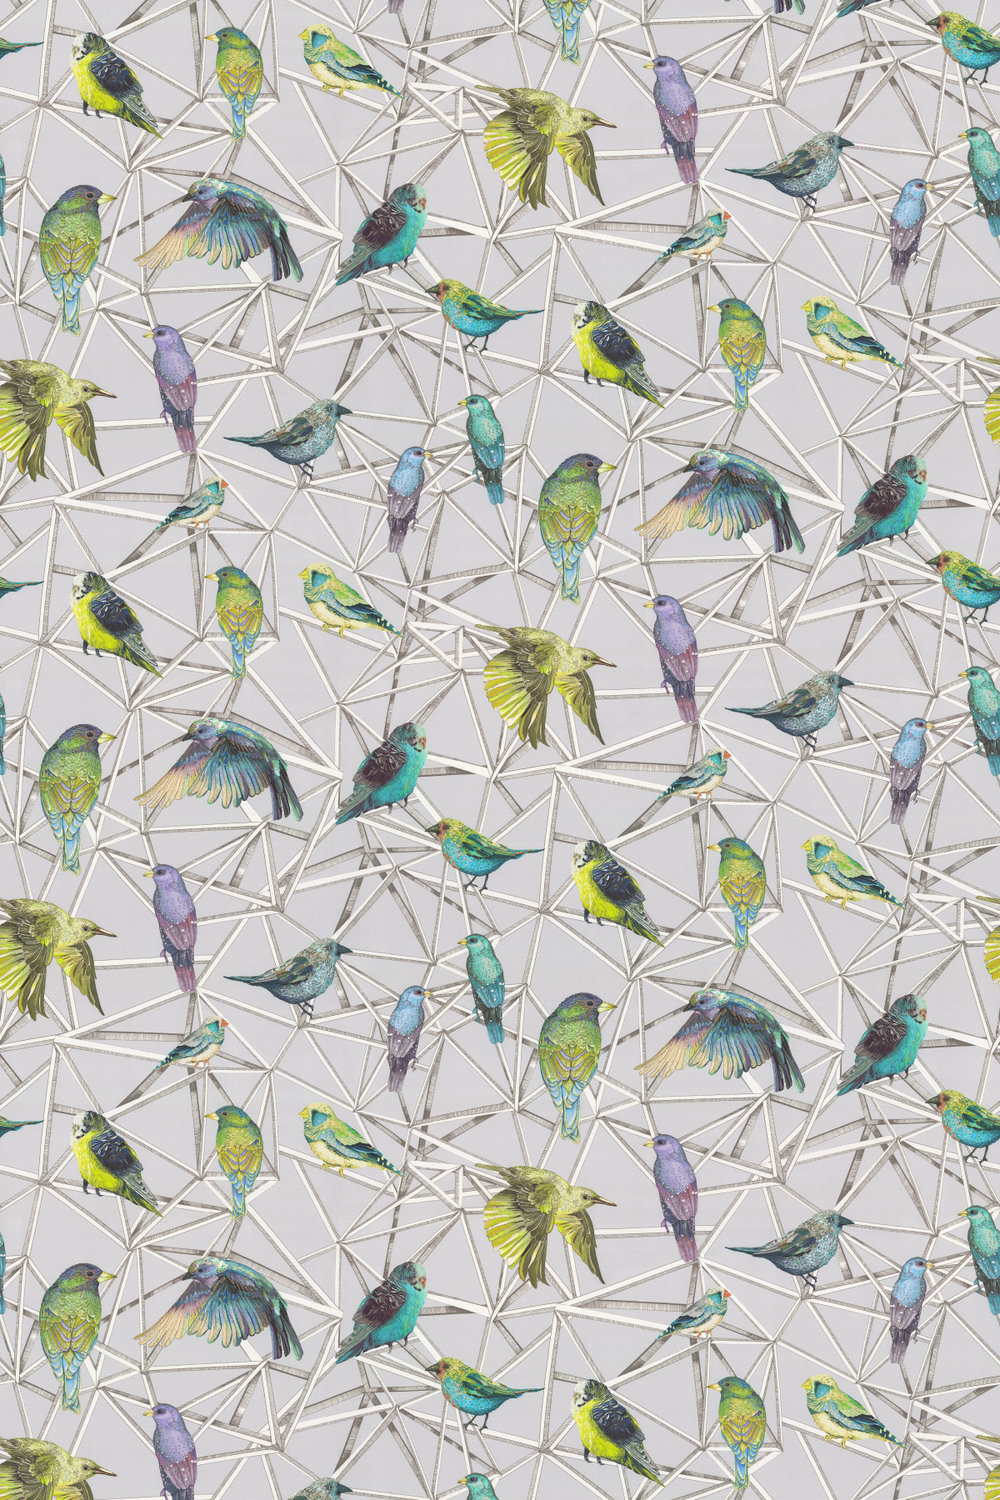 Aviary Fabric - Turquoise / Chartreuse / Violet - by Osborne & Little